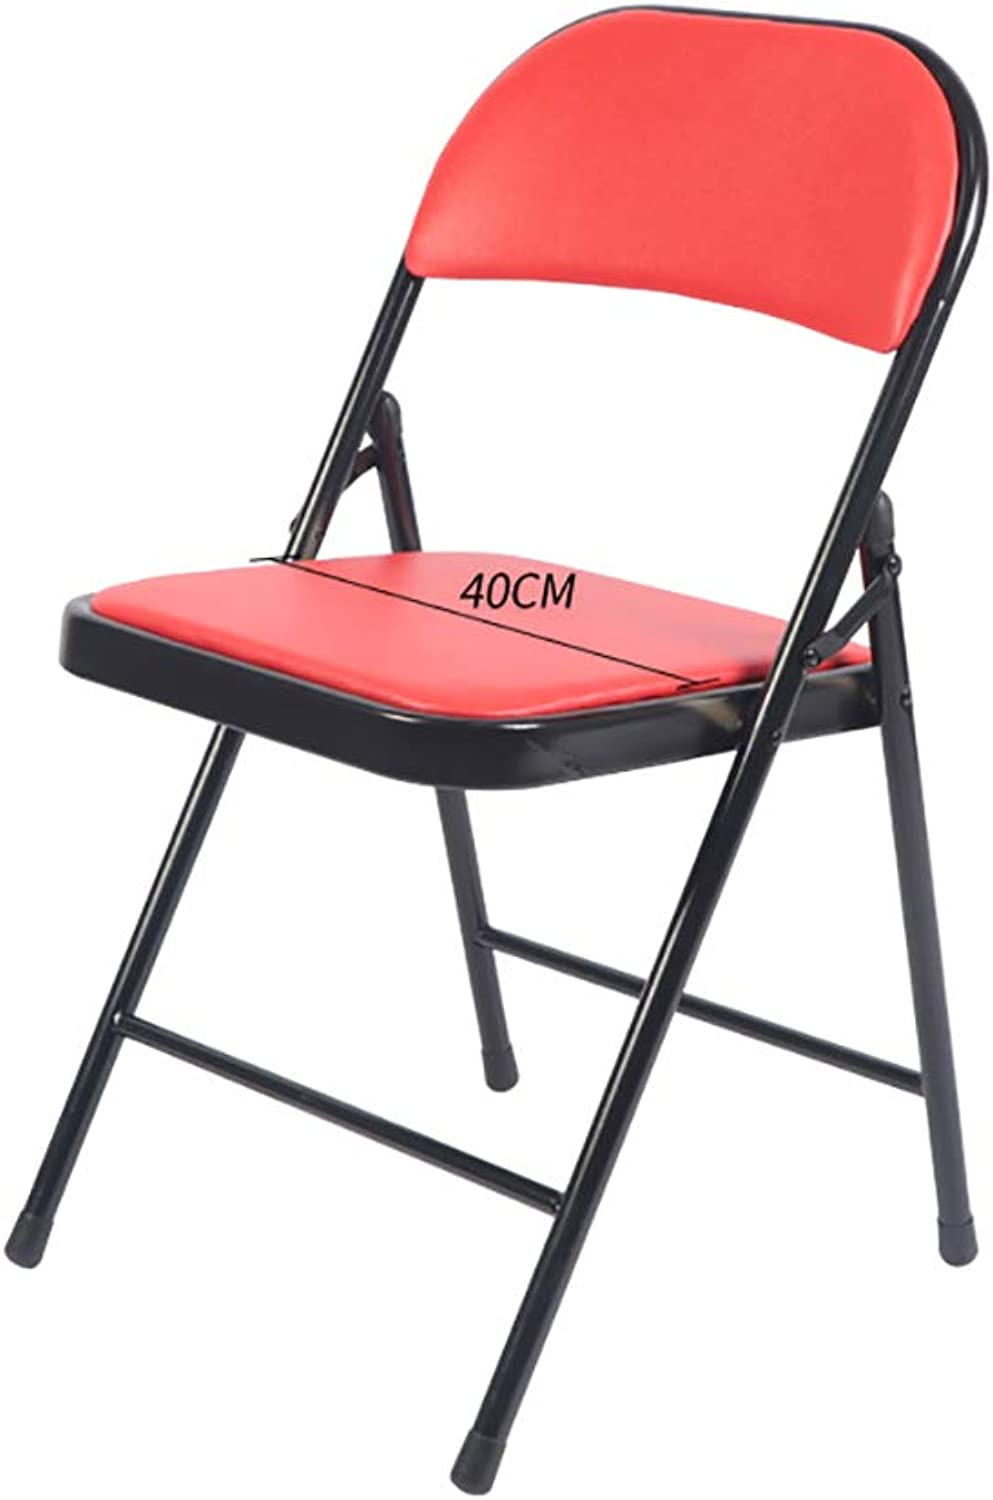 Folding Chair Home Leisure Chair Portable Meeting Training Computer Chair Back Chair Four colors. (color   B)